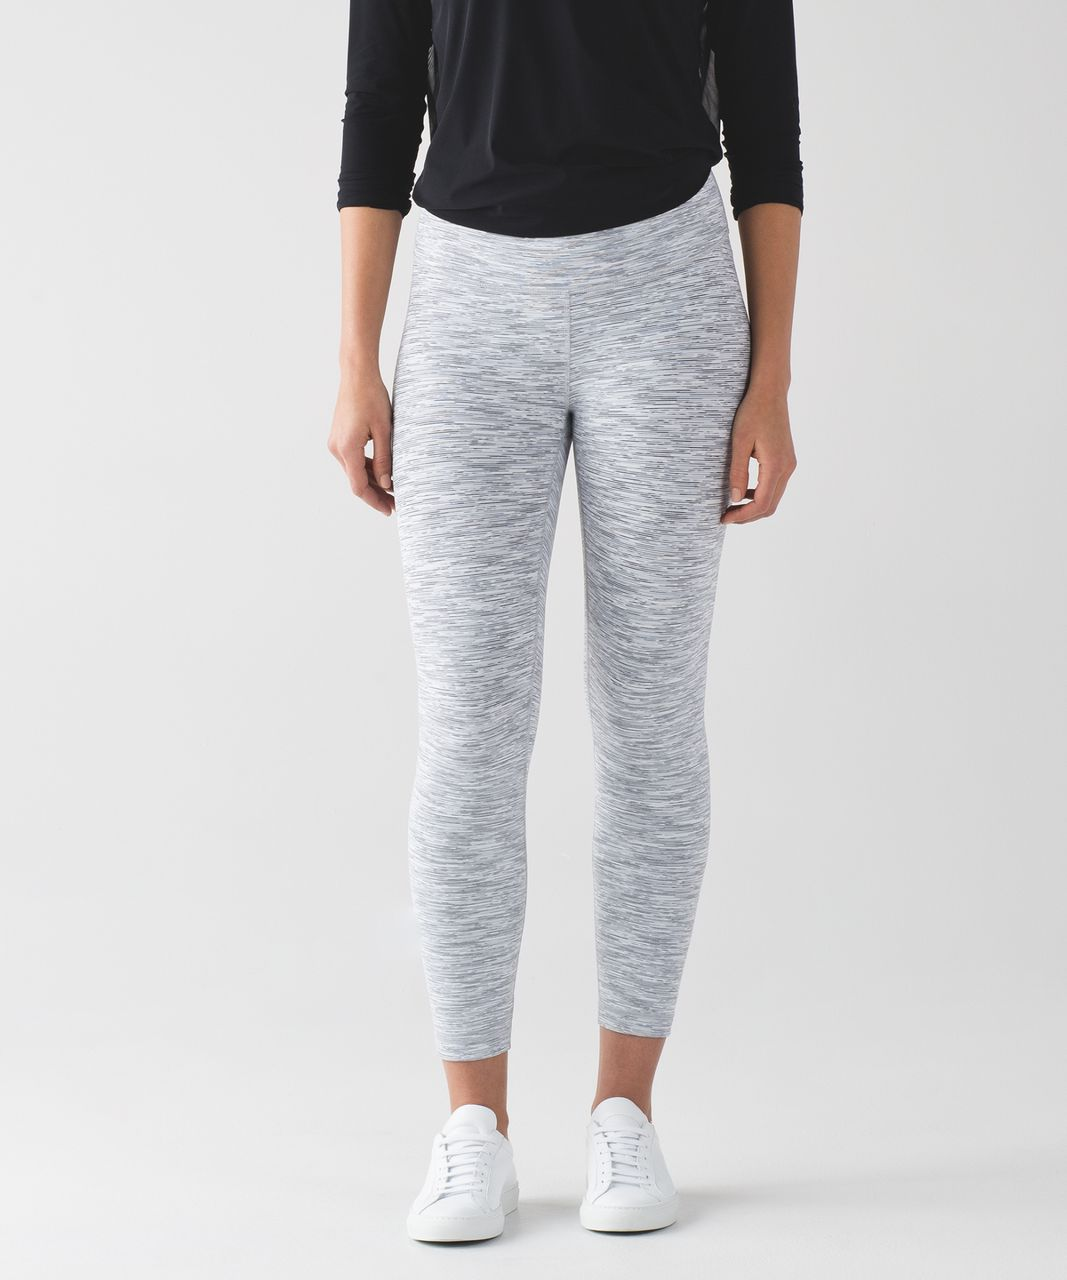 4d016ec7c Lululemon High Times Pant - Wee Are From Space Ice Grey Alpine White - lulu  fanatics